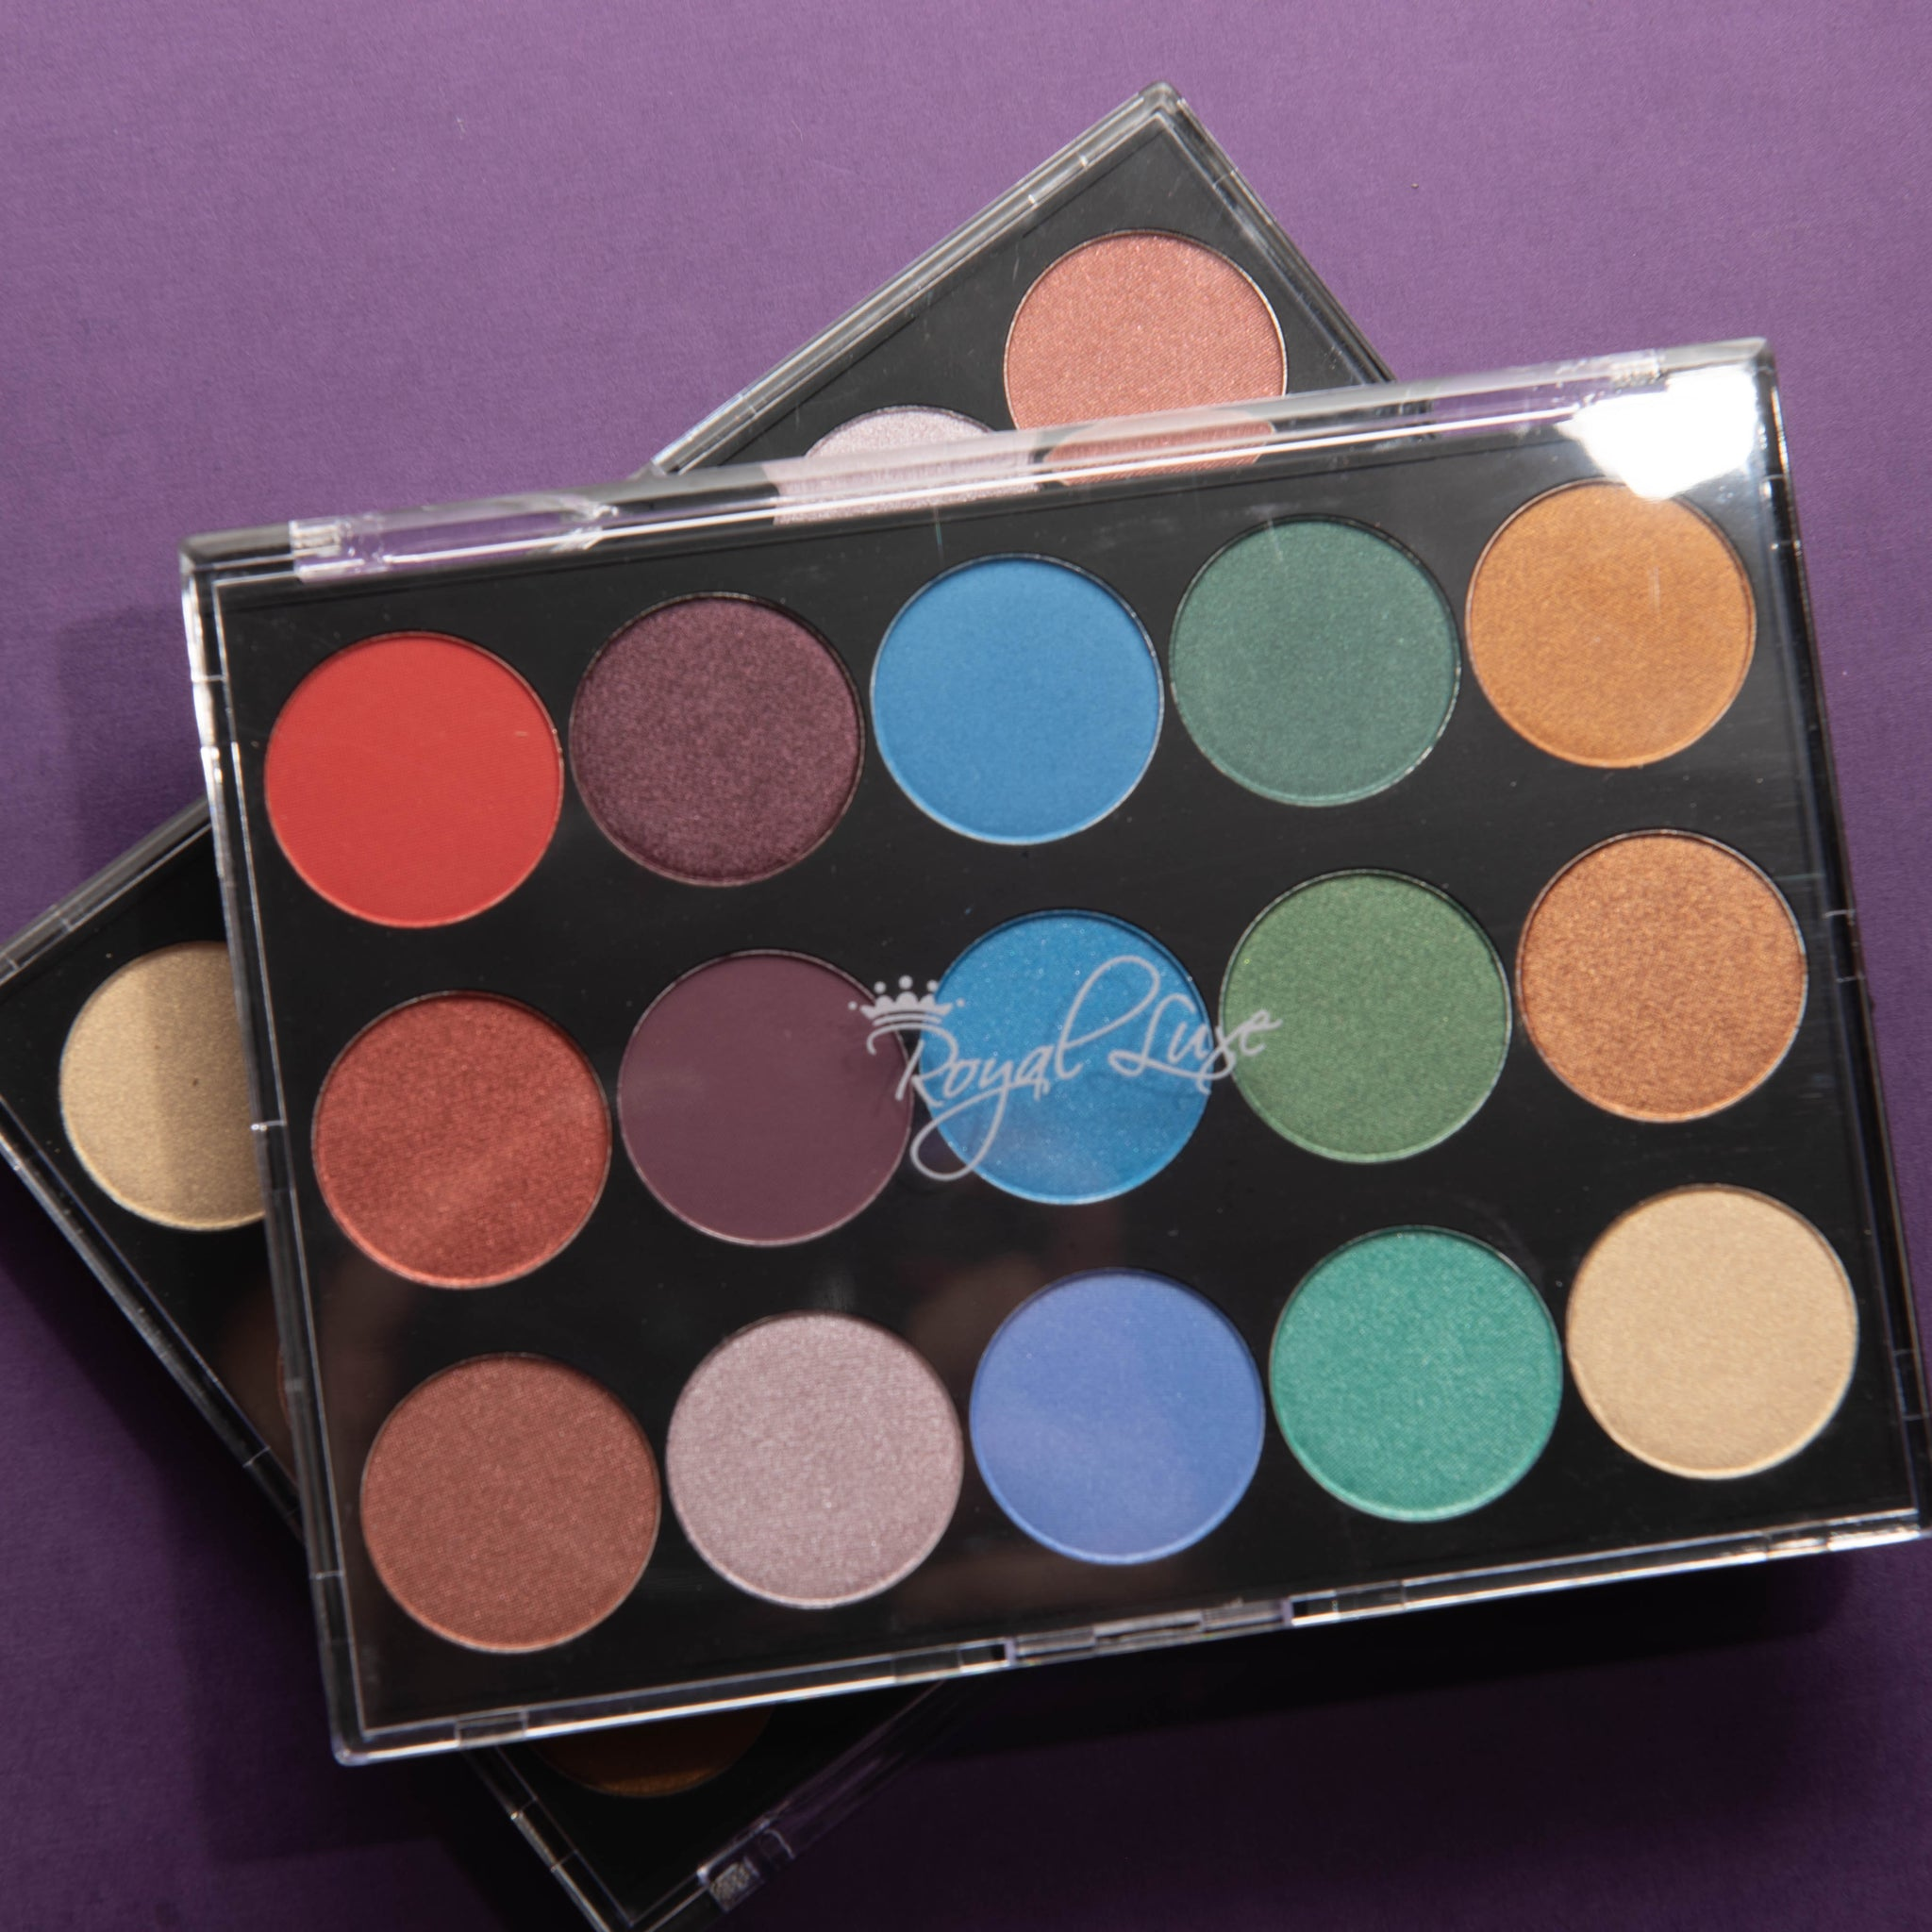 Summer Bliss Eyeshadow Palette